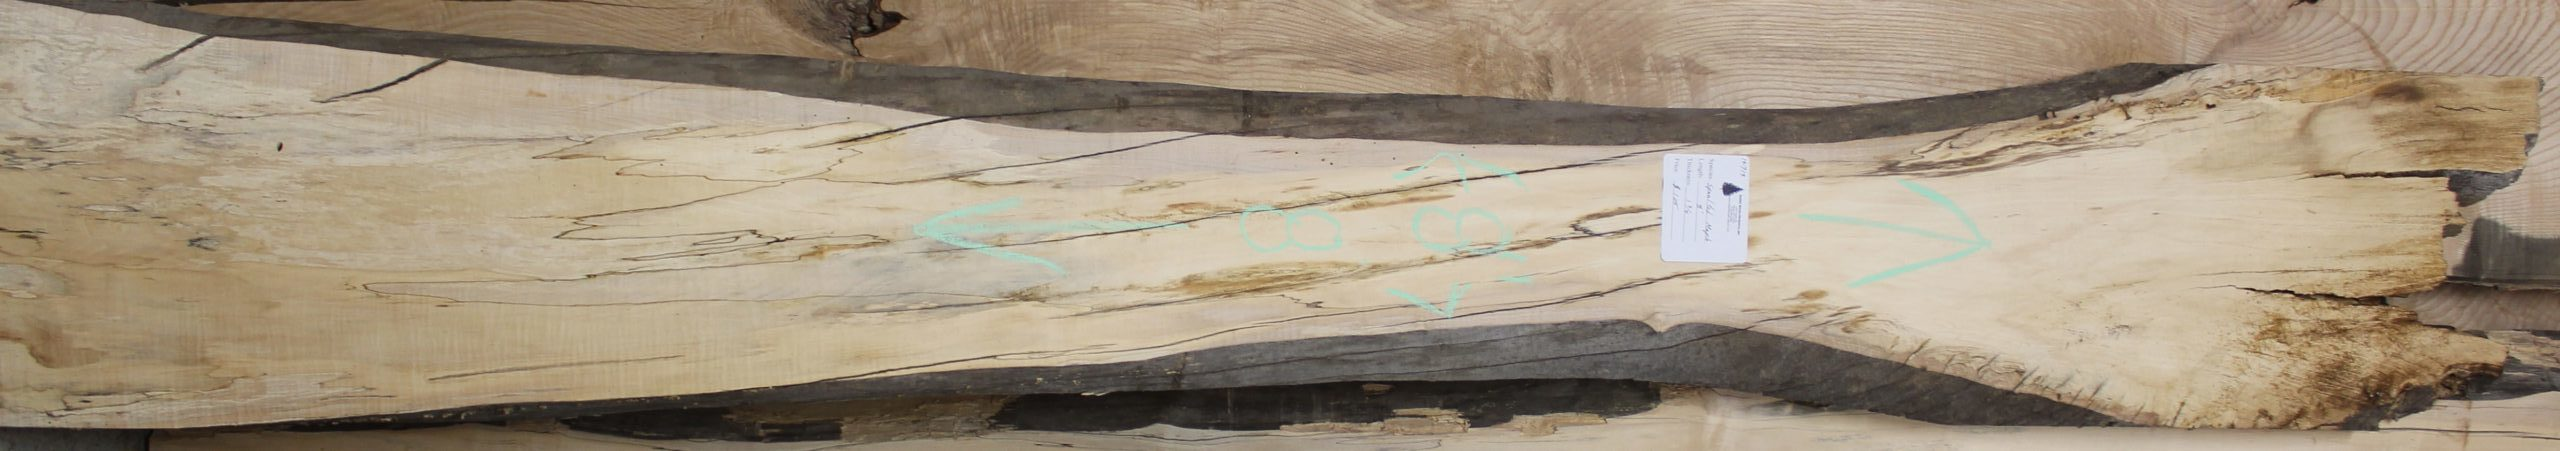 Spaulted Maple Live Edge Slab